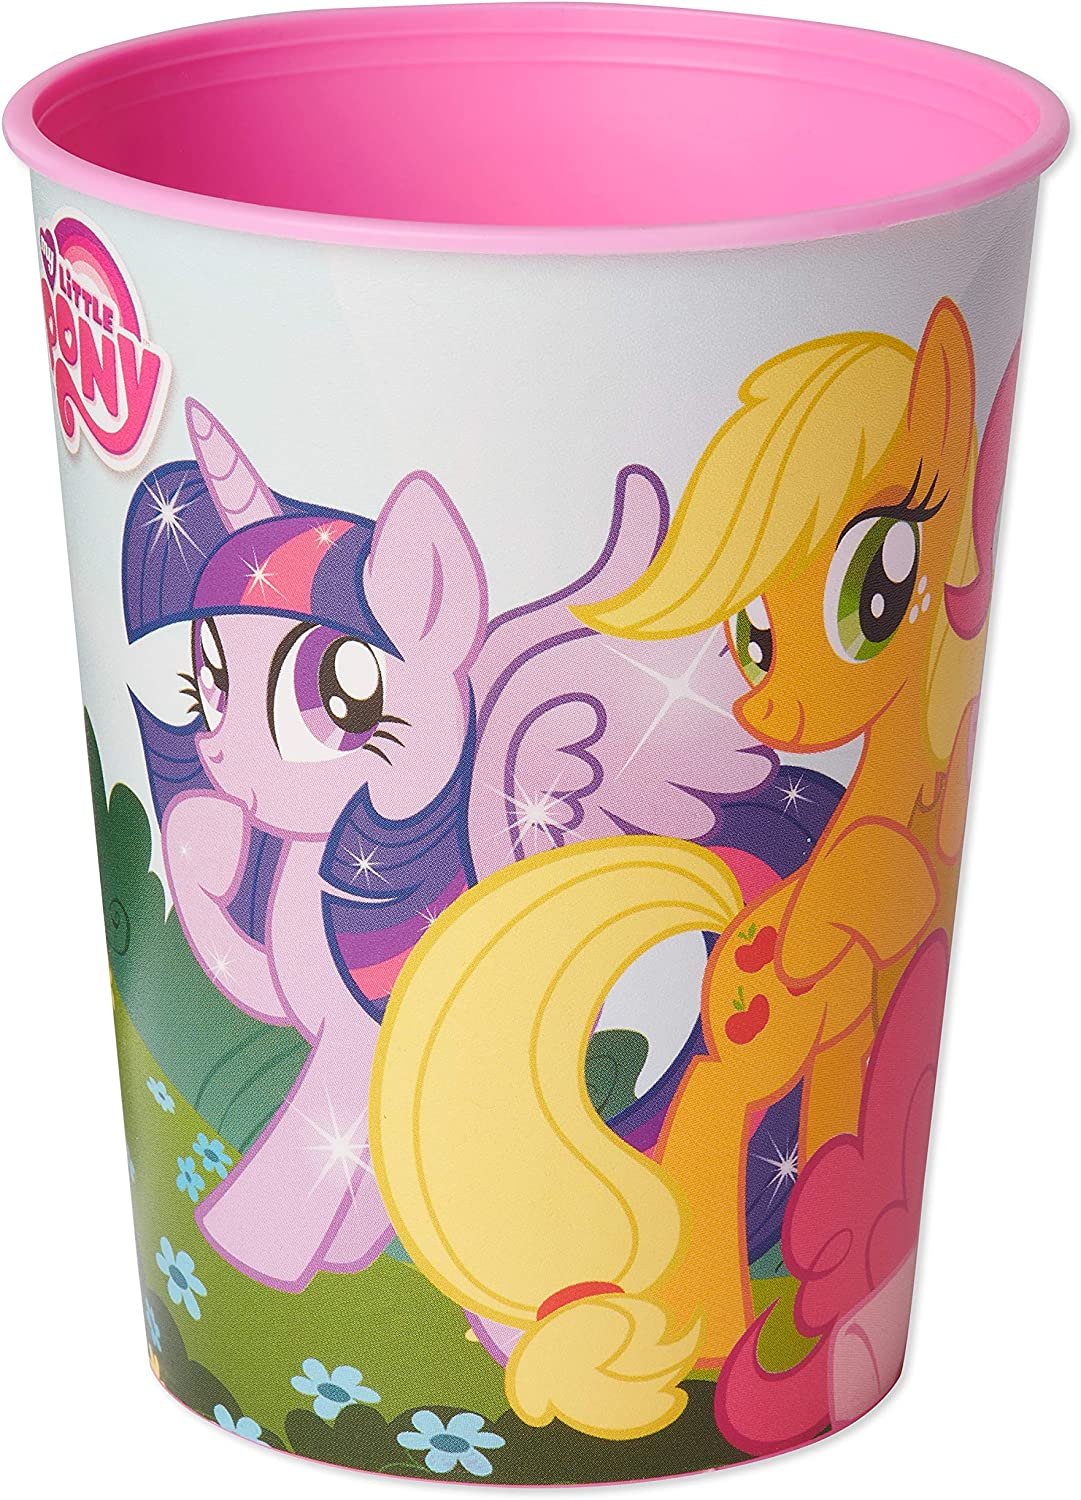 American Greetings My Little Pony 12-Coun Plastic Cups Kids for Choice Recommendation